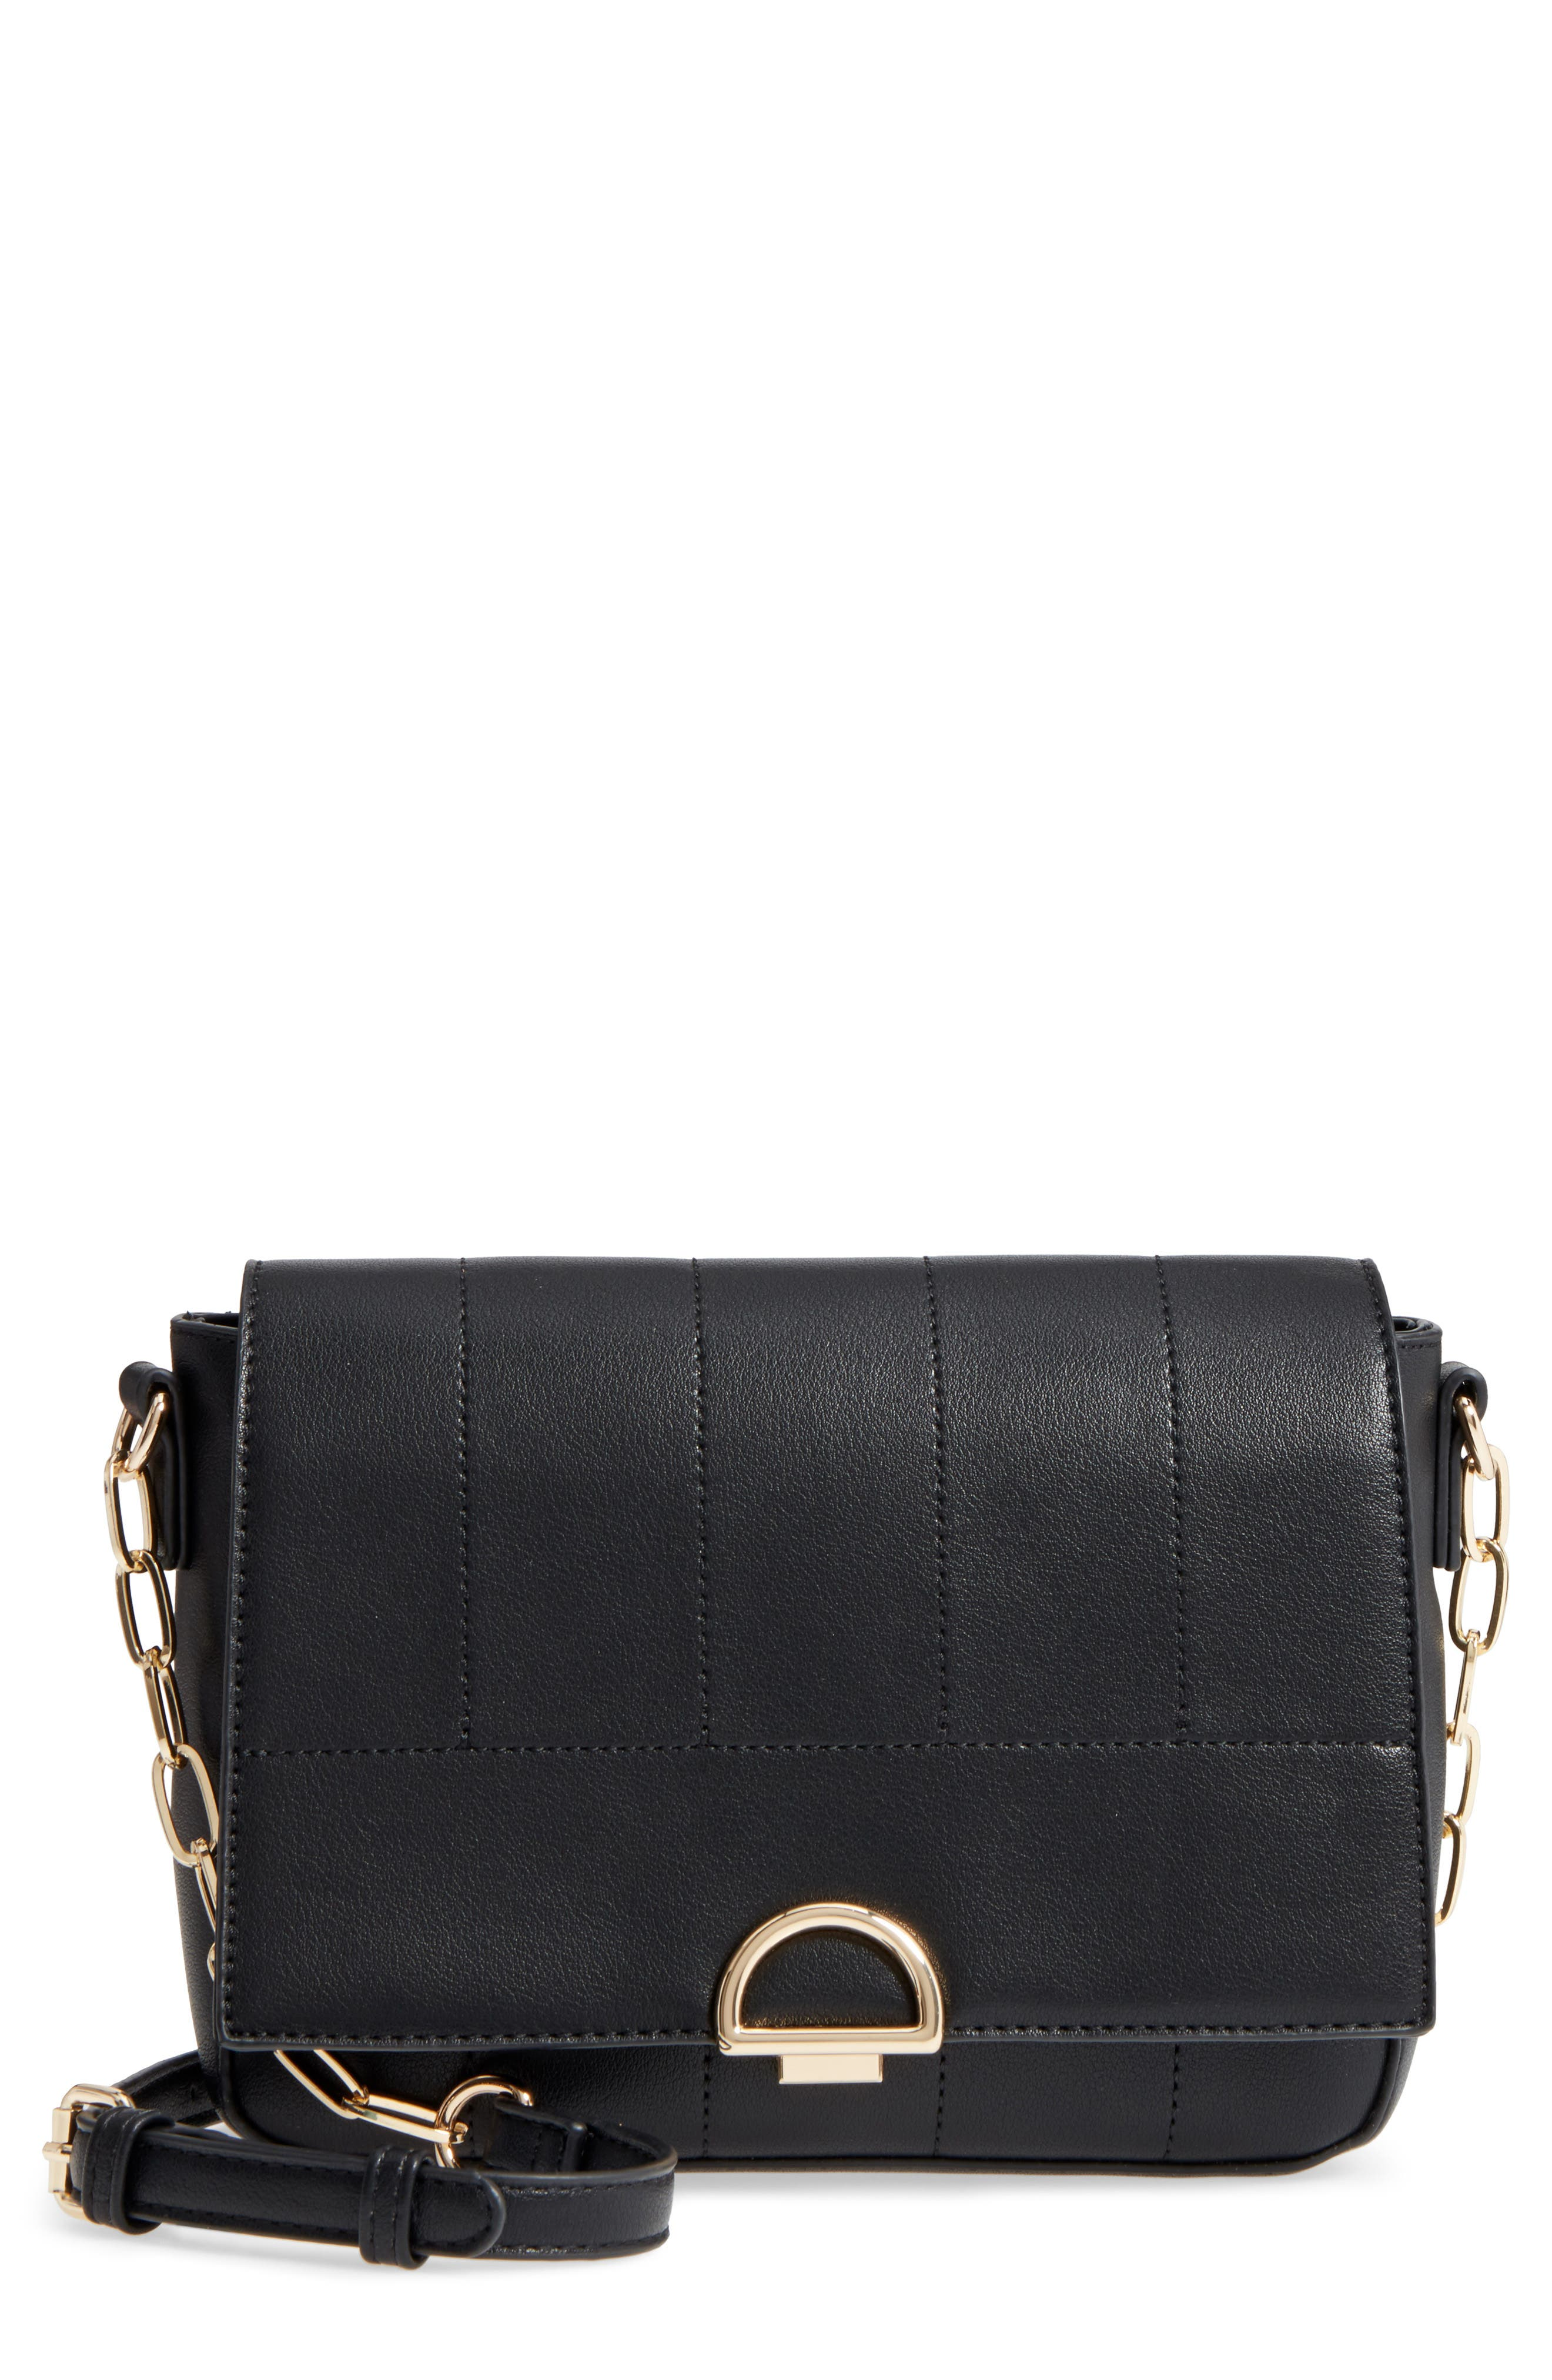 Alternate Image 1 Selected - Sole Society Colie Faux Leather Crossbody Bag